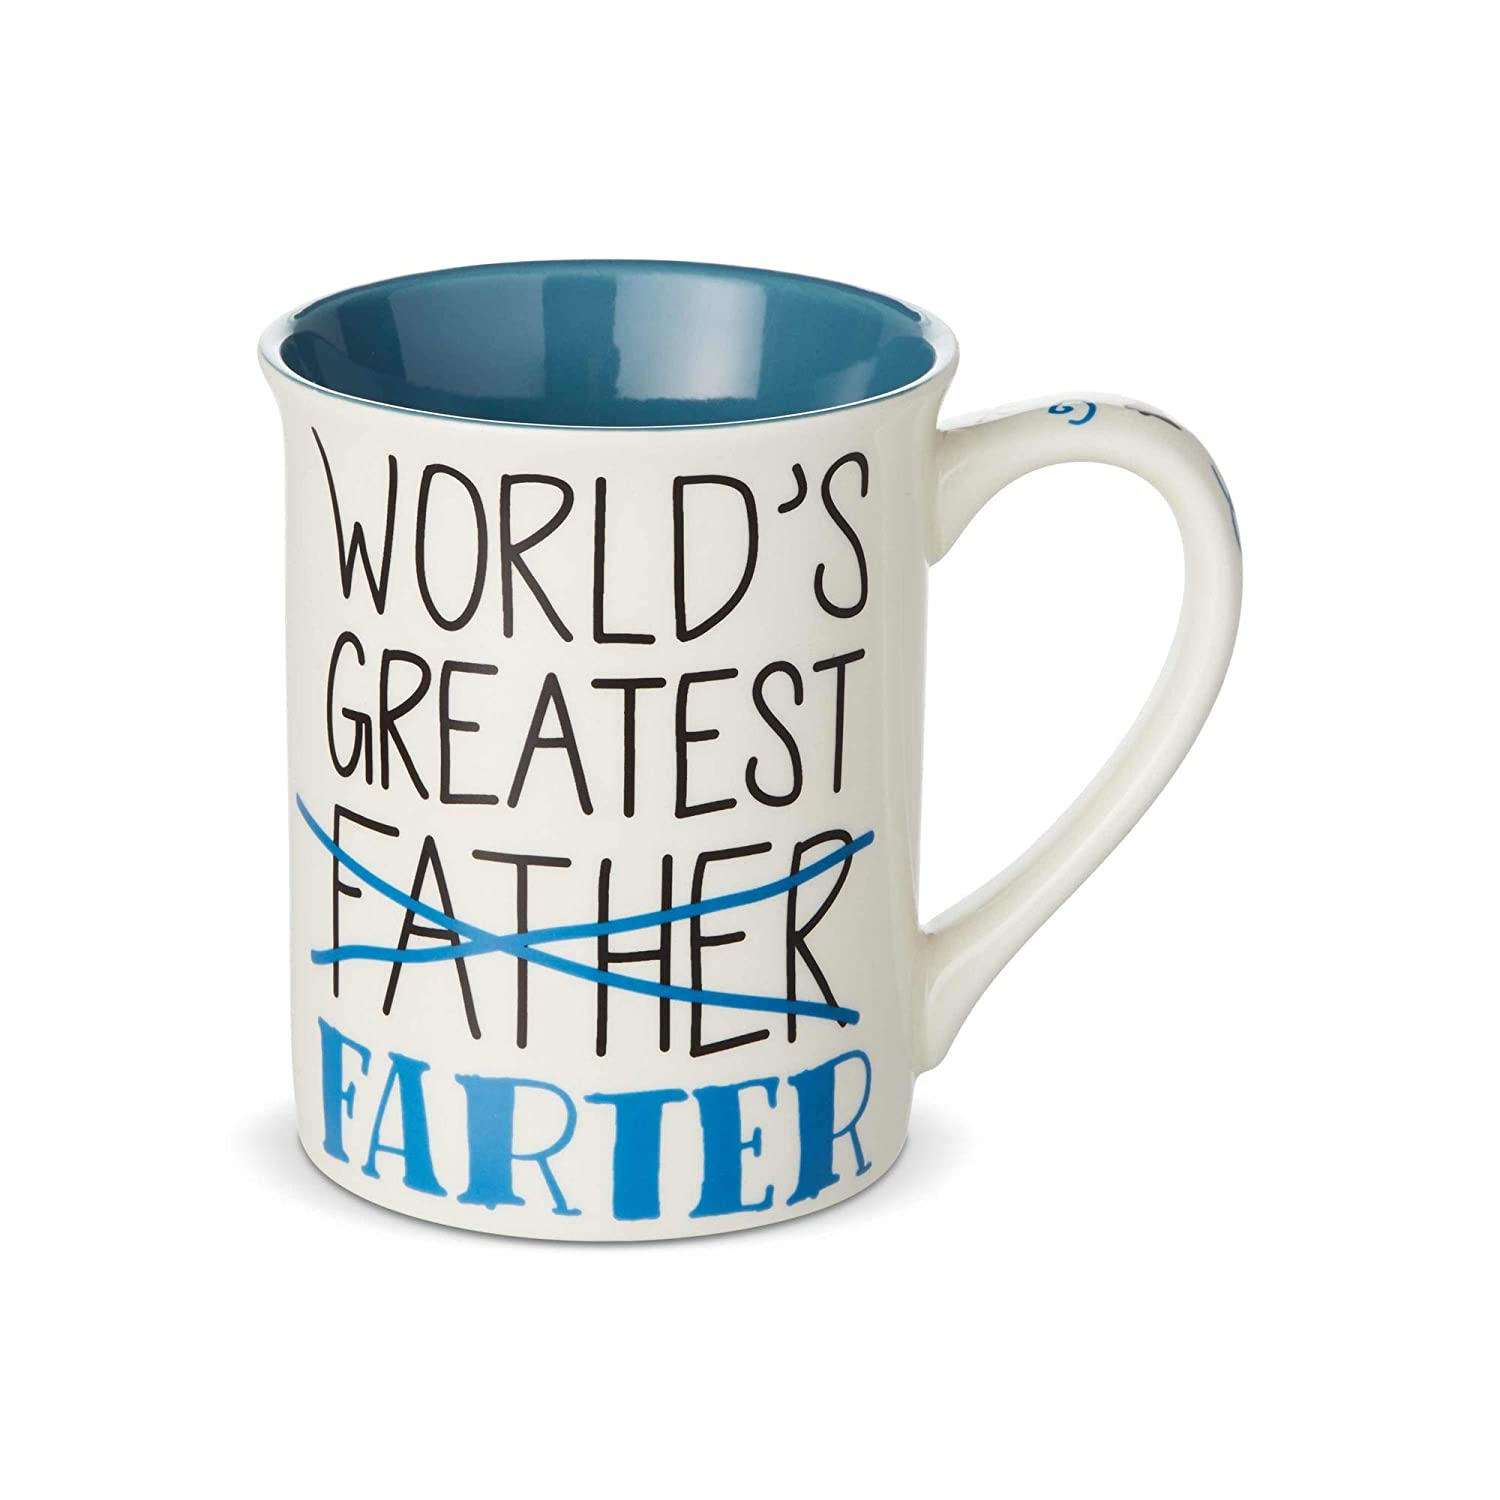 16 oz. Enesco 6003383 Our Name is Mud Worlds Greatest Farter Father Coffee Mug